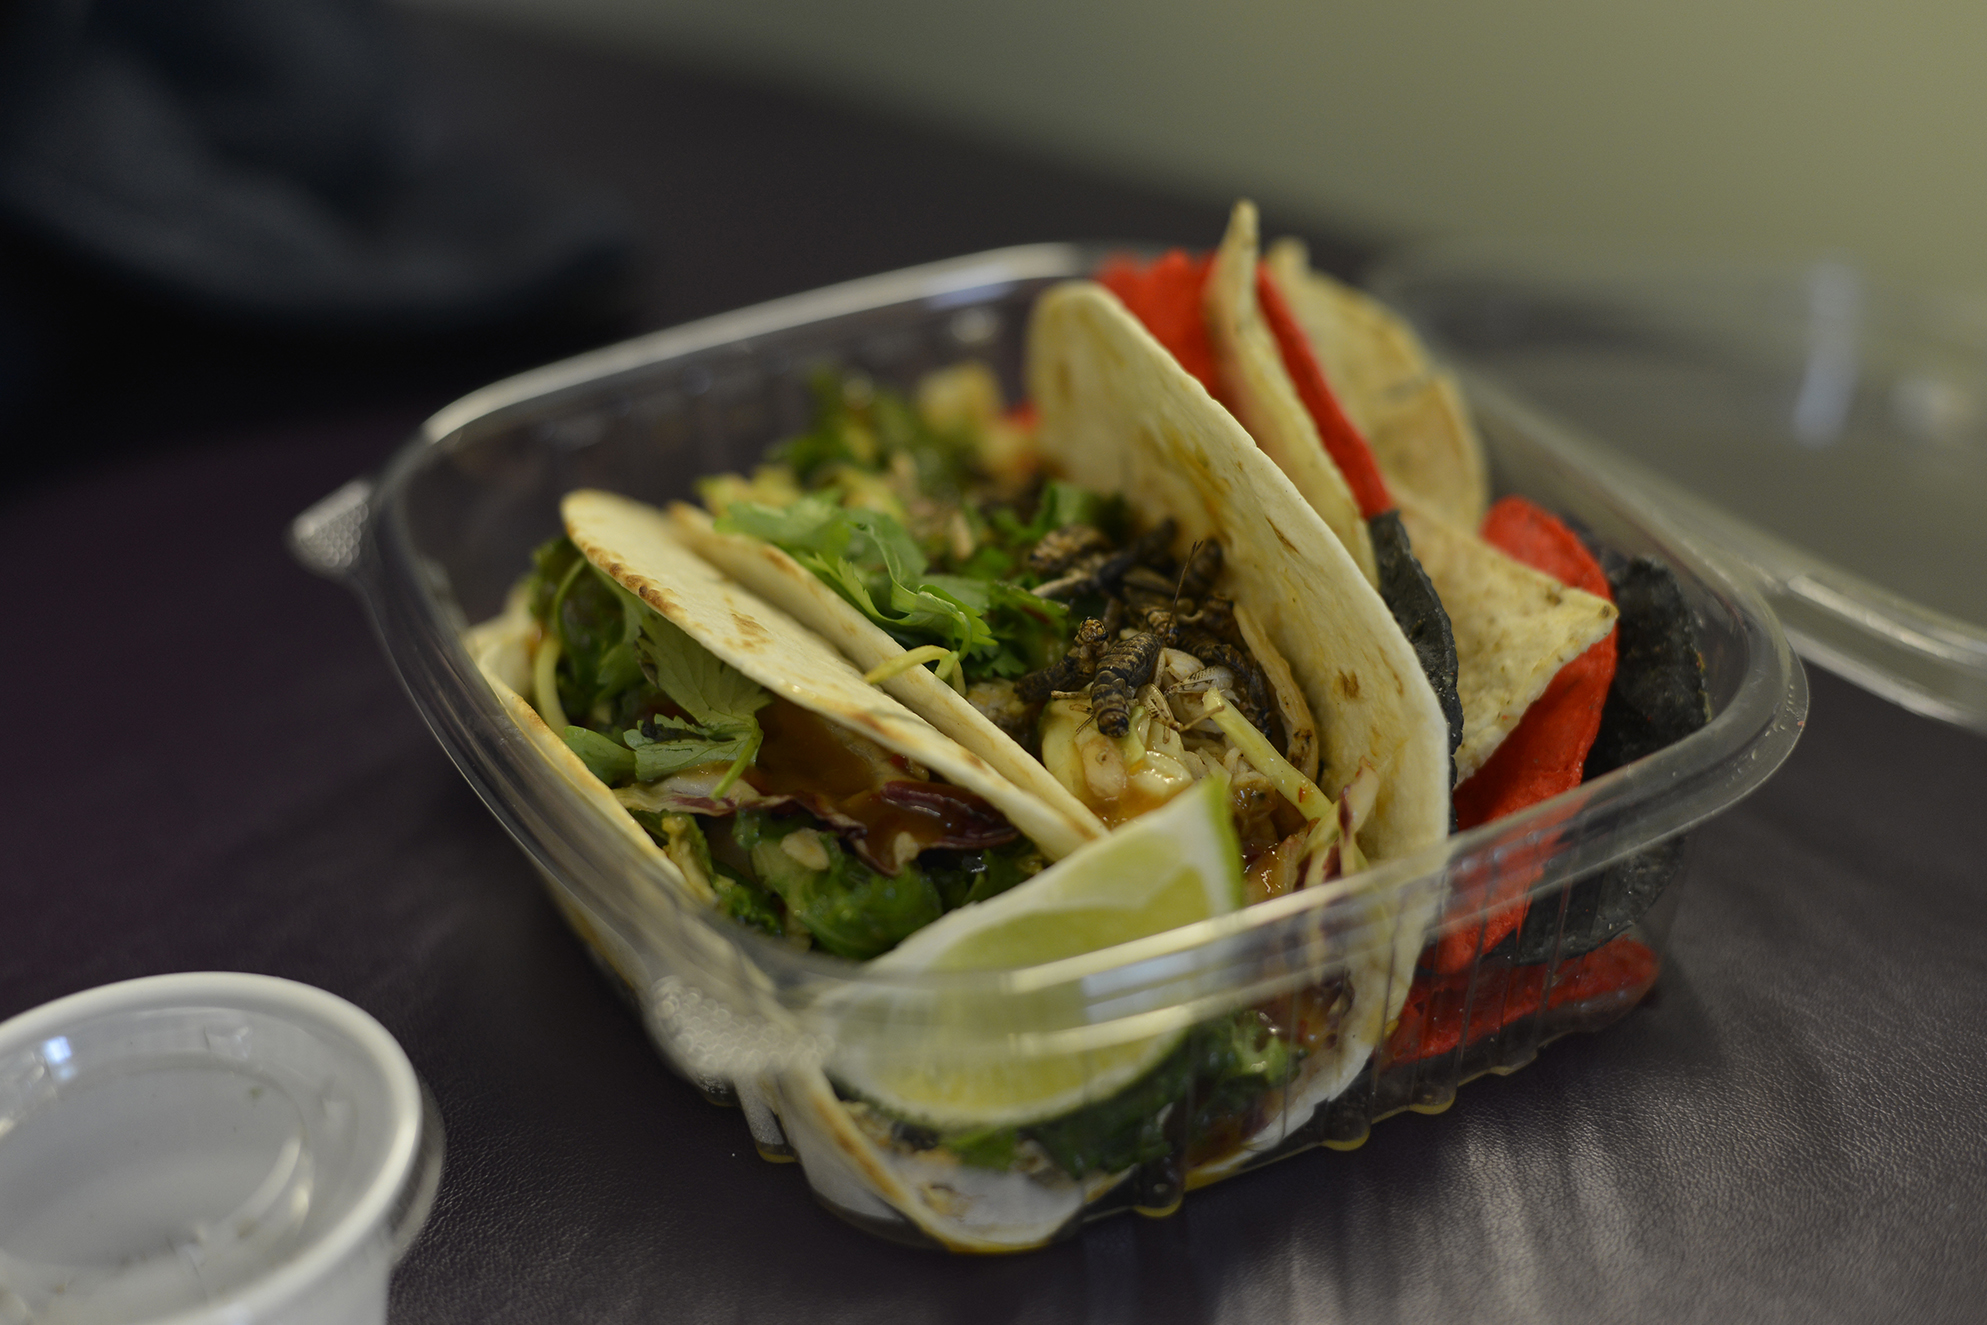 The Food for Thought food truck offers crickets as a side to their tacos. (Photo by Jason Jiang/The Daily Campus)